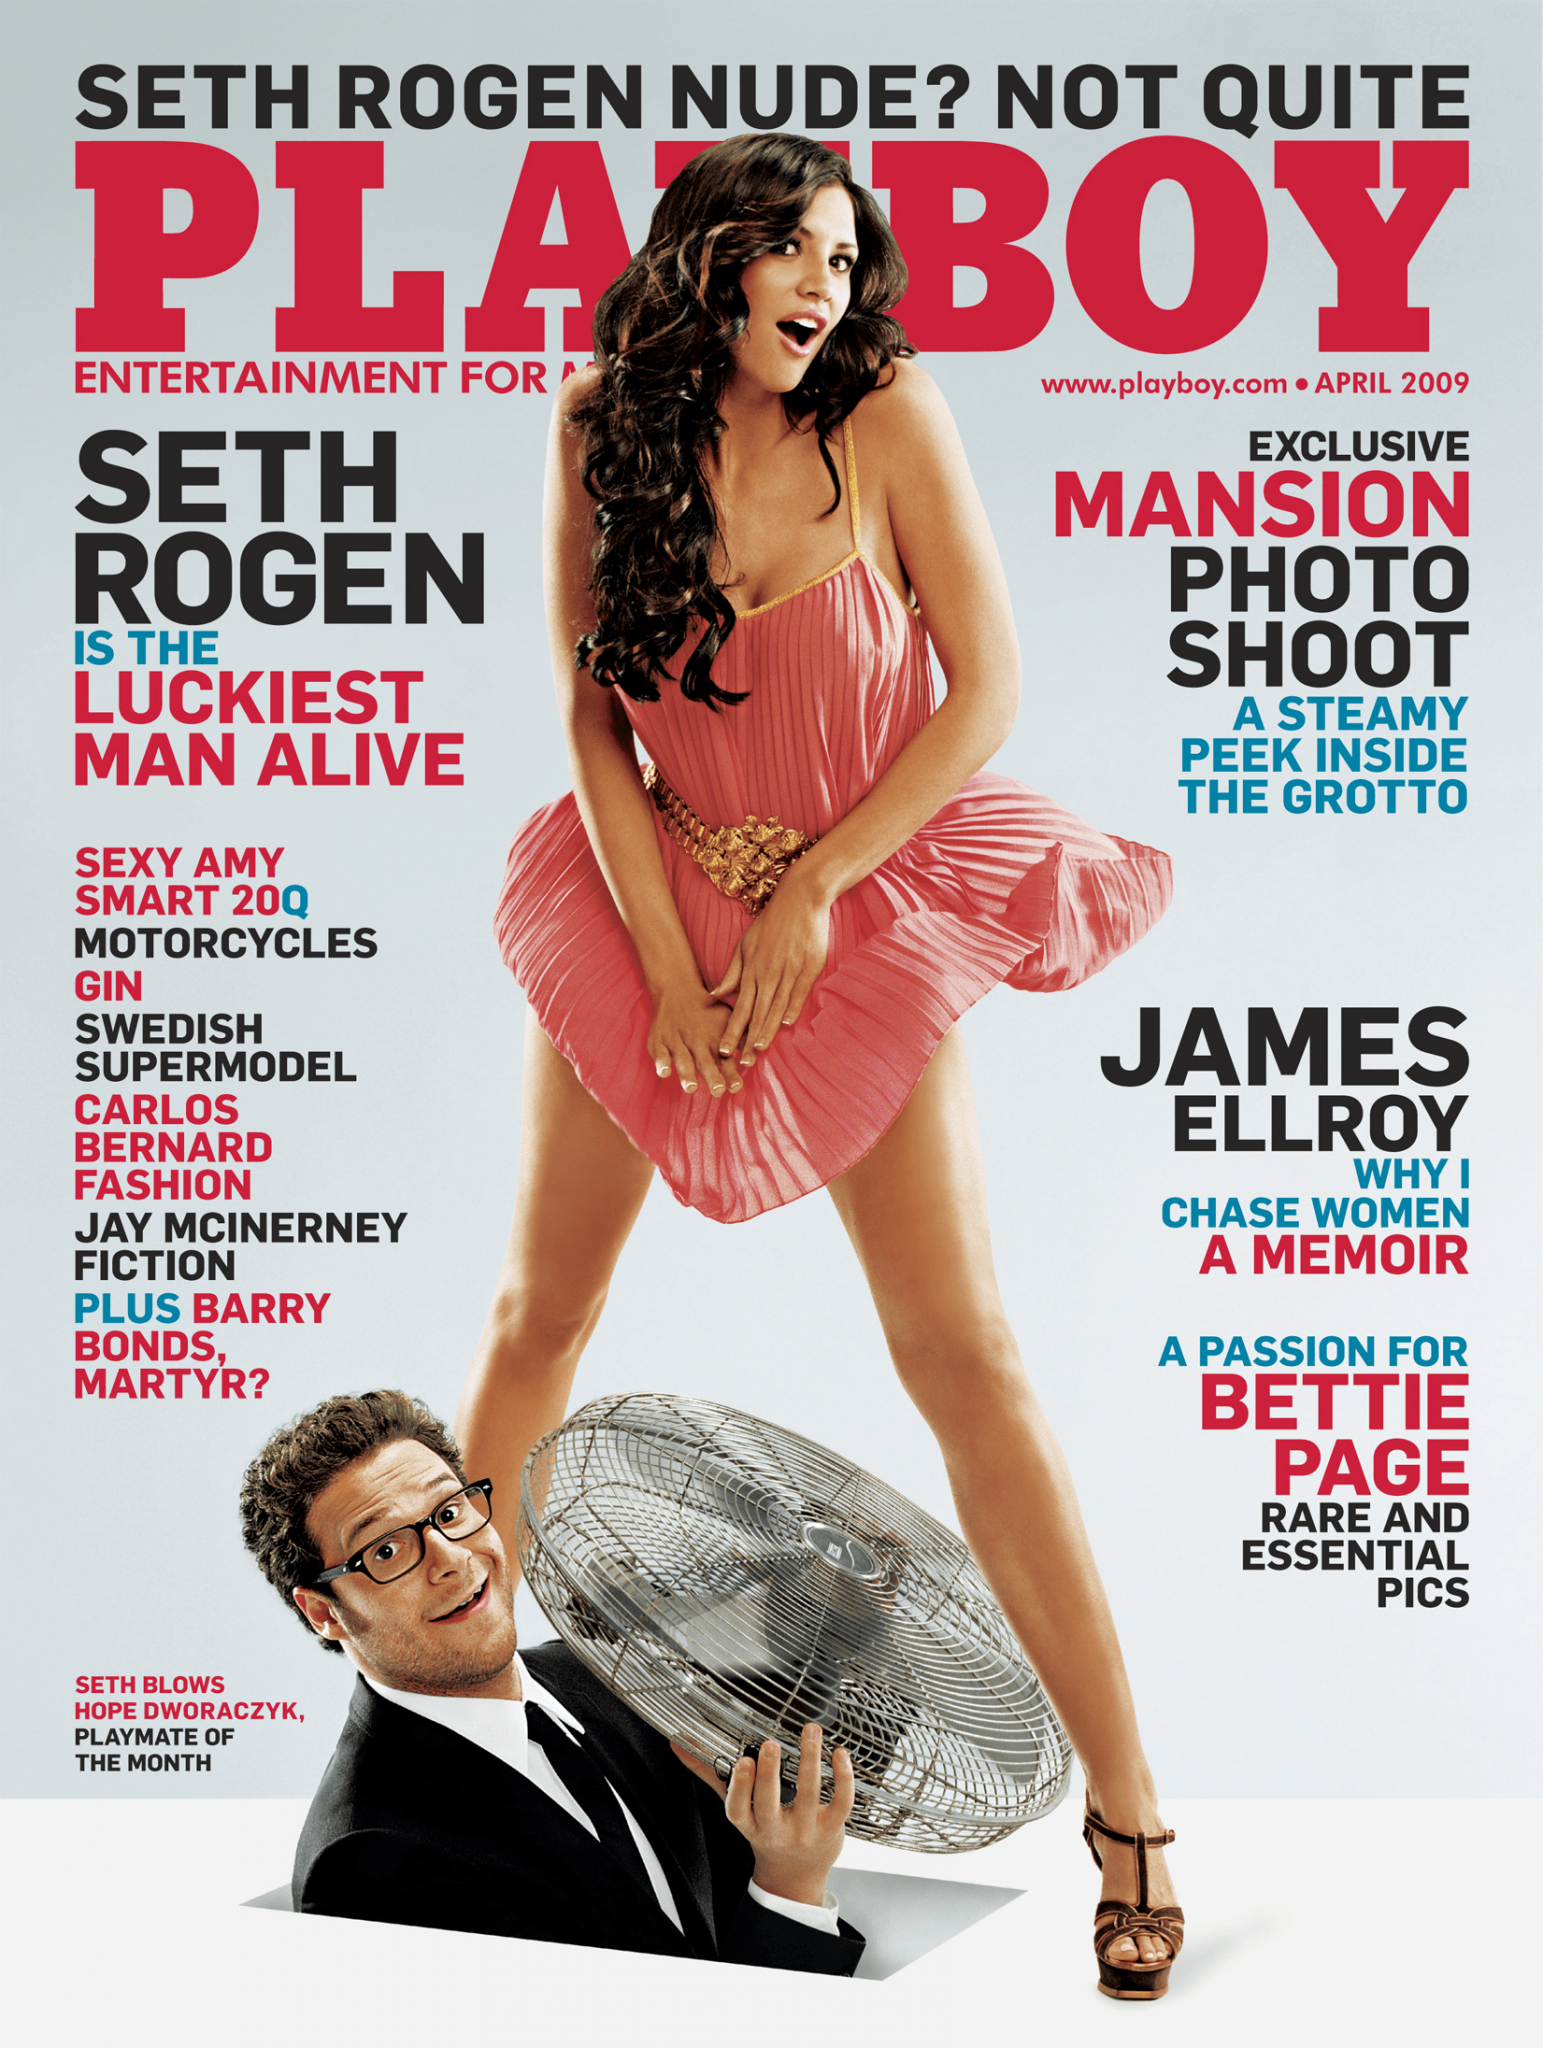 Seth Rogen iconic Playboy covers Loaded